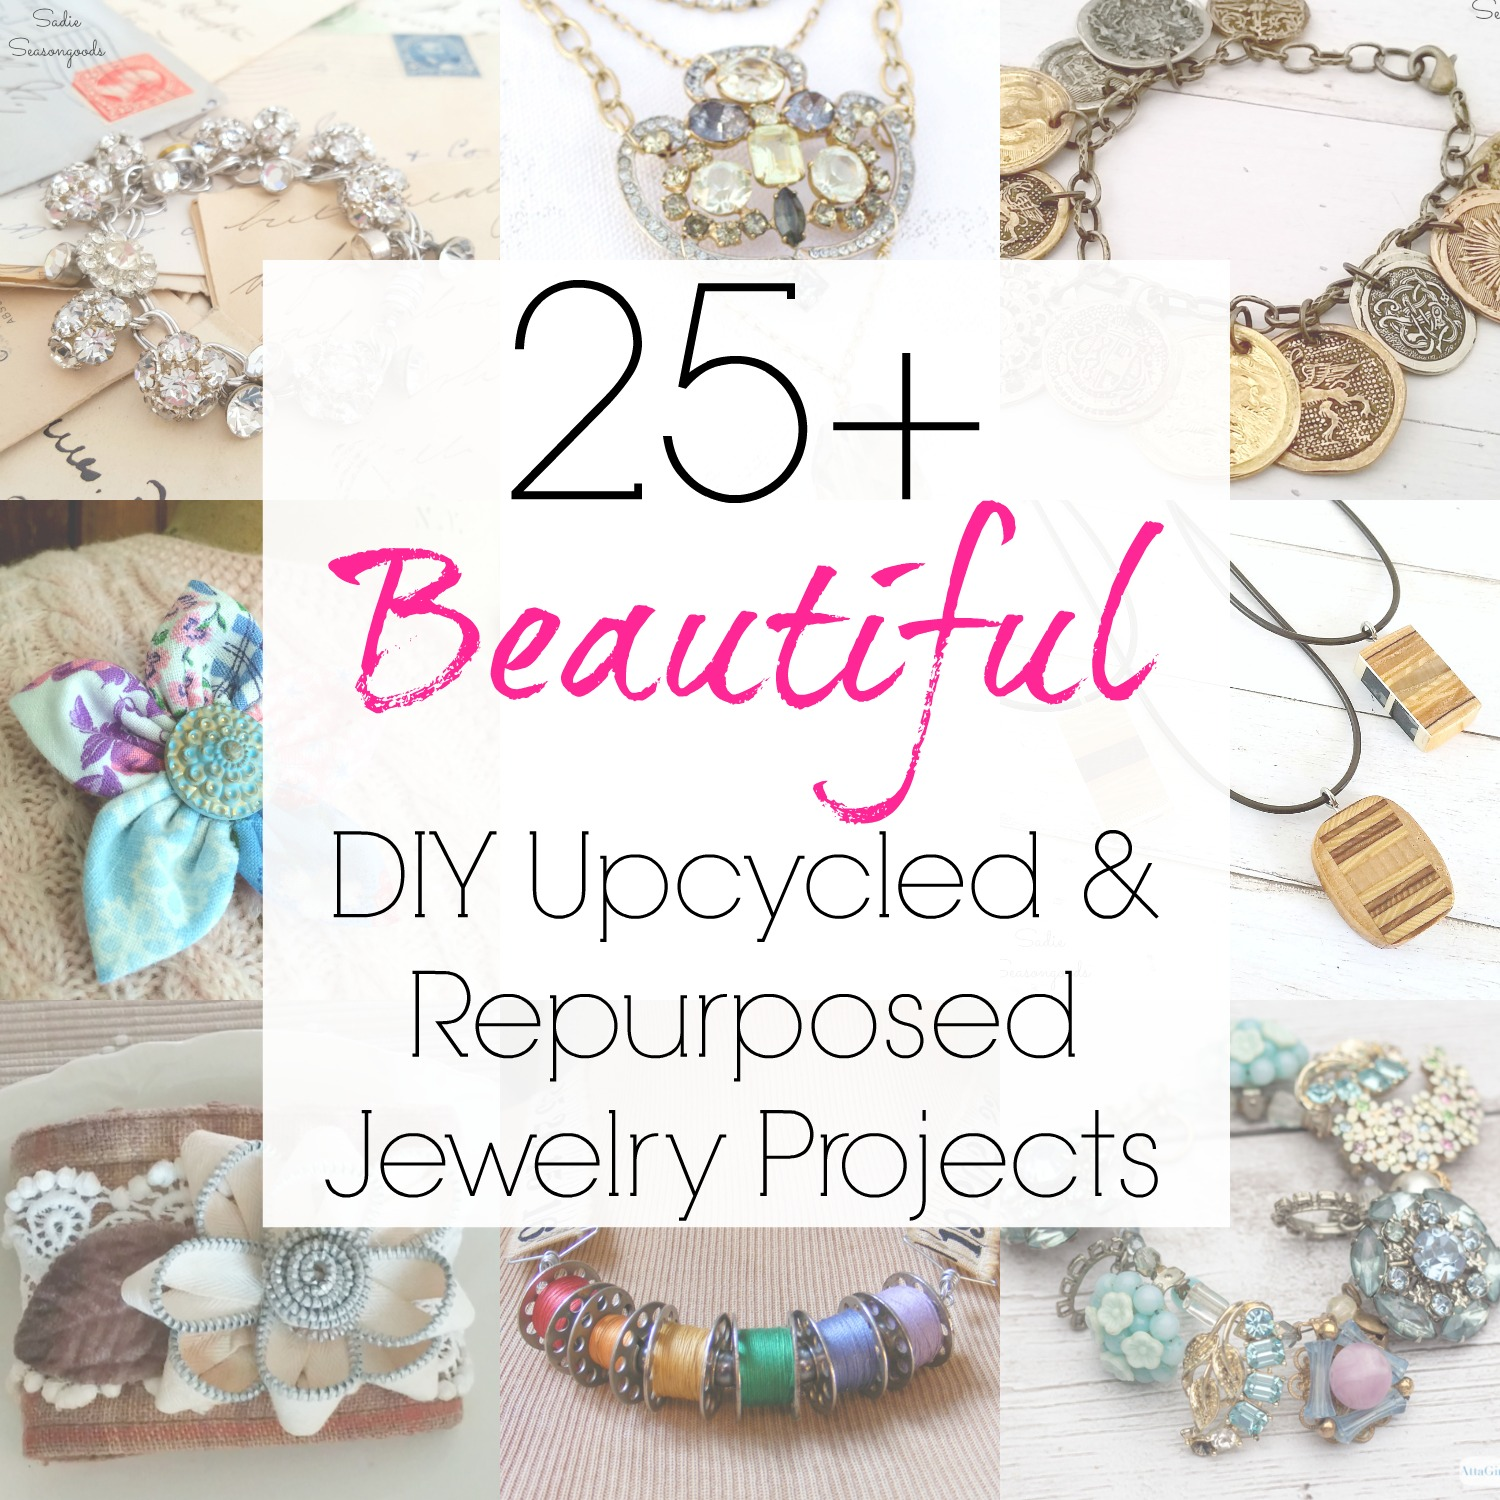 Custom jewelry and boho jewelry and handmade jewelry project ideas from upcycling and repurposing by Sadie Seasongoods / www.sadieseasongoods.com